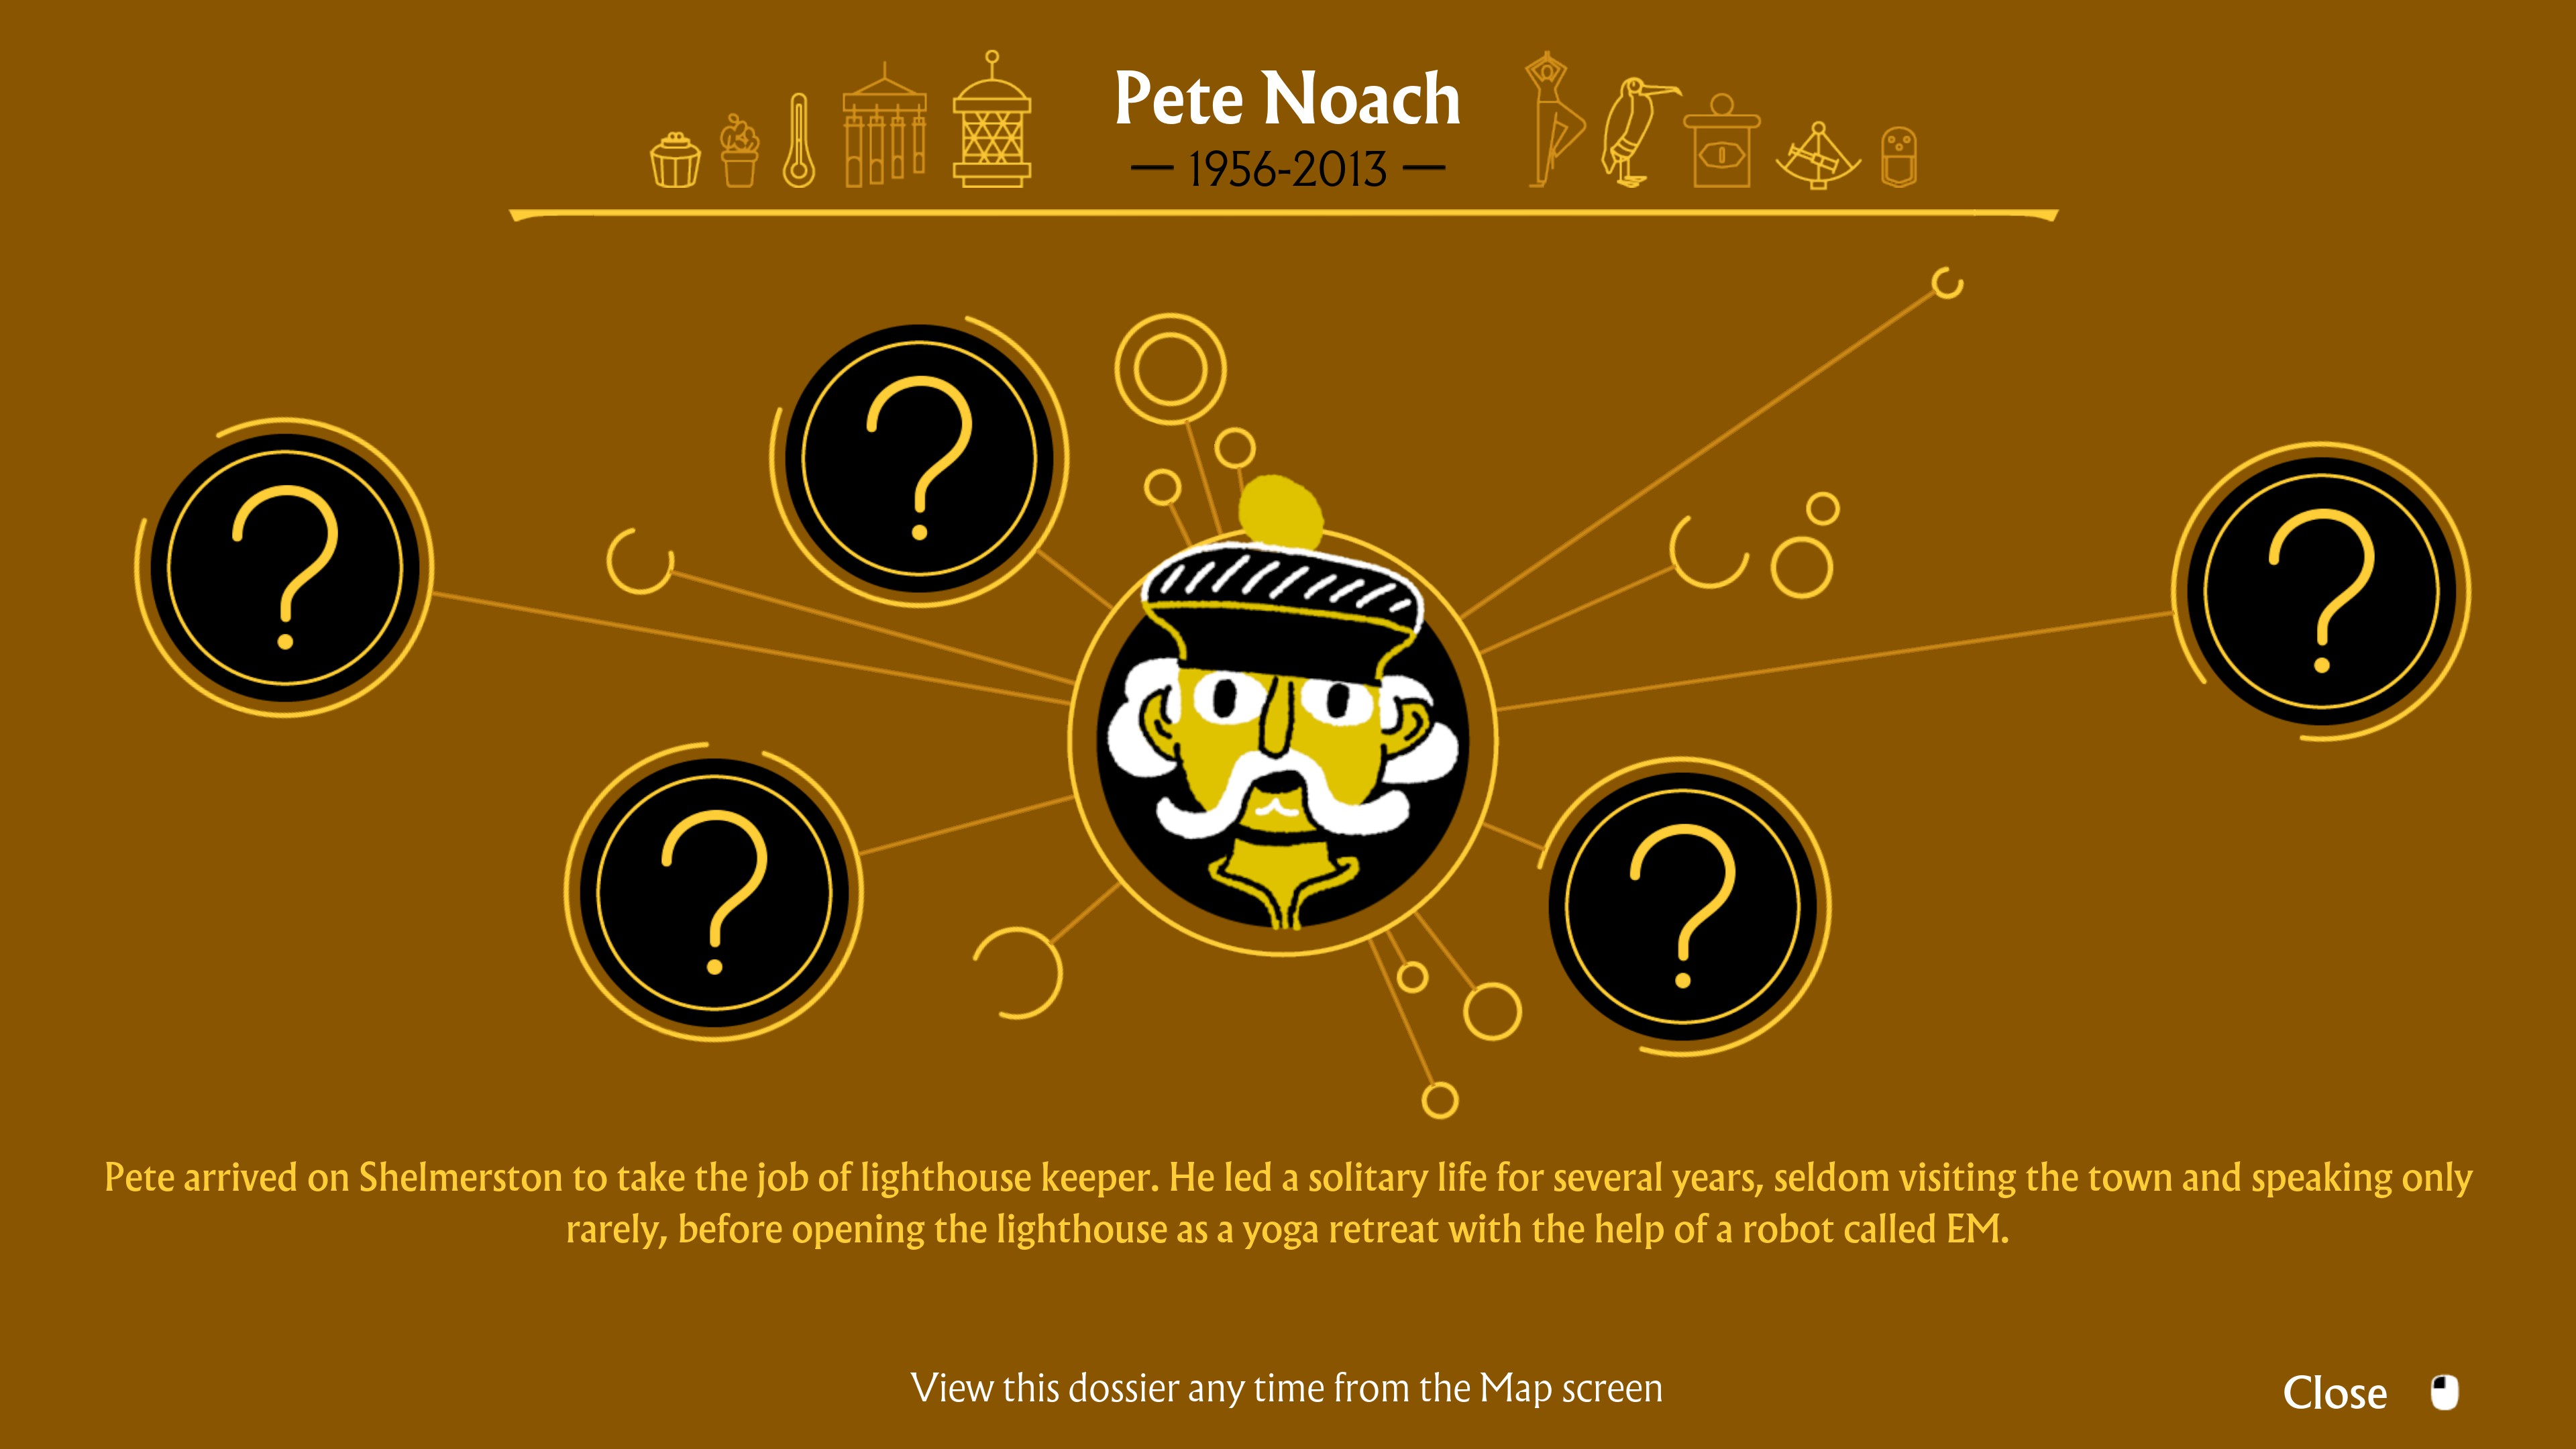 I Am Dead. Memories of Pete Noach 1956-2013. Pete arrived on Shelmerston to take the job of lighthouse keeper. He led a solitary life for several years, seldom visiting the town and speaking only rarely, before opening the lighthouse as a yoga retreat with the help of a robot called EM.